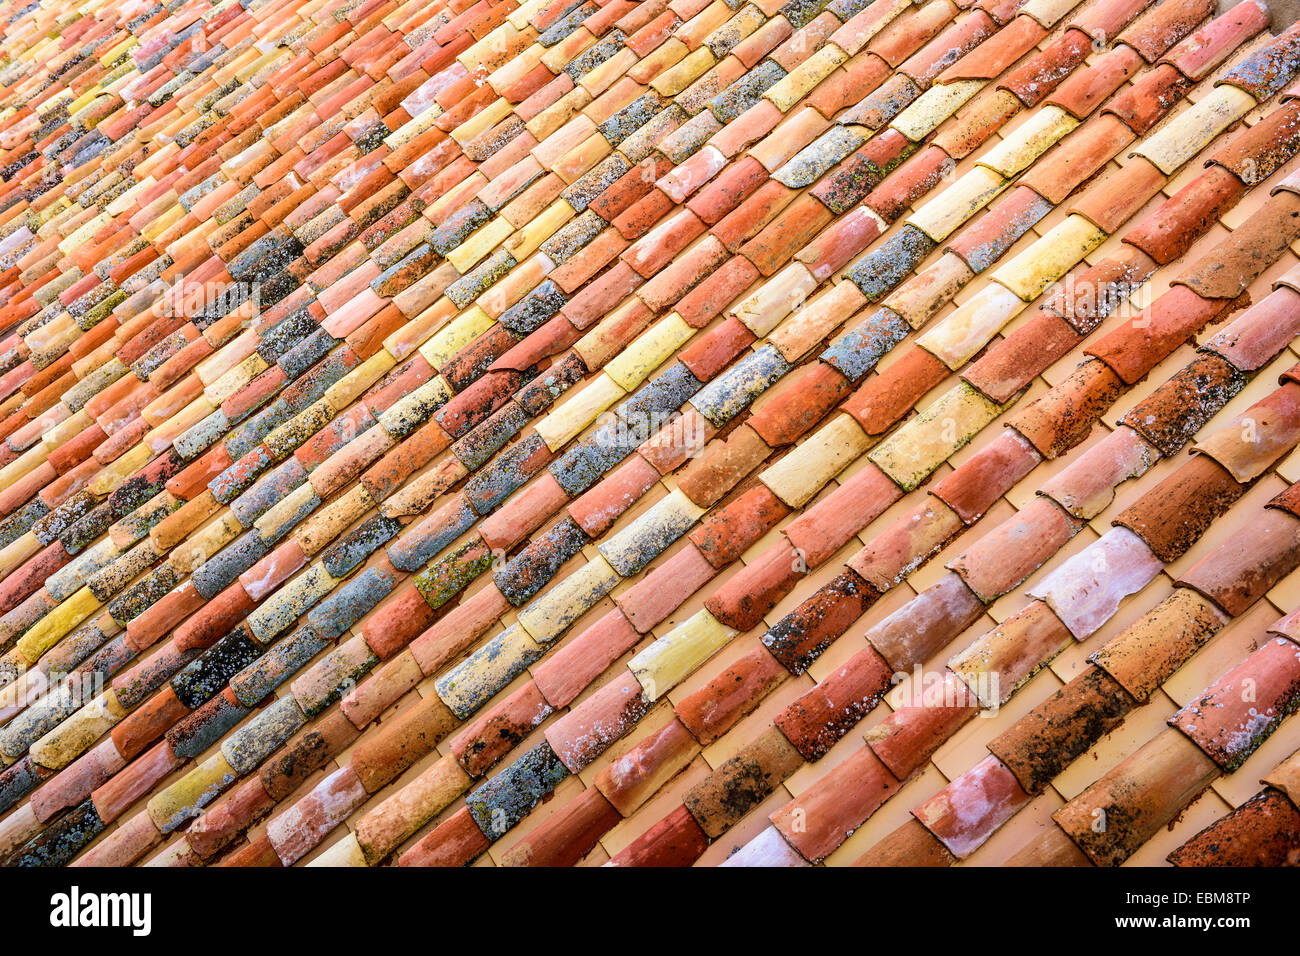 Spanish tiles on a rooftop in Toledo, Spain. - Stock Image